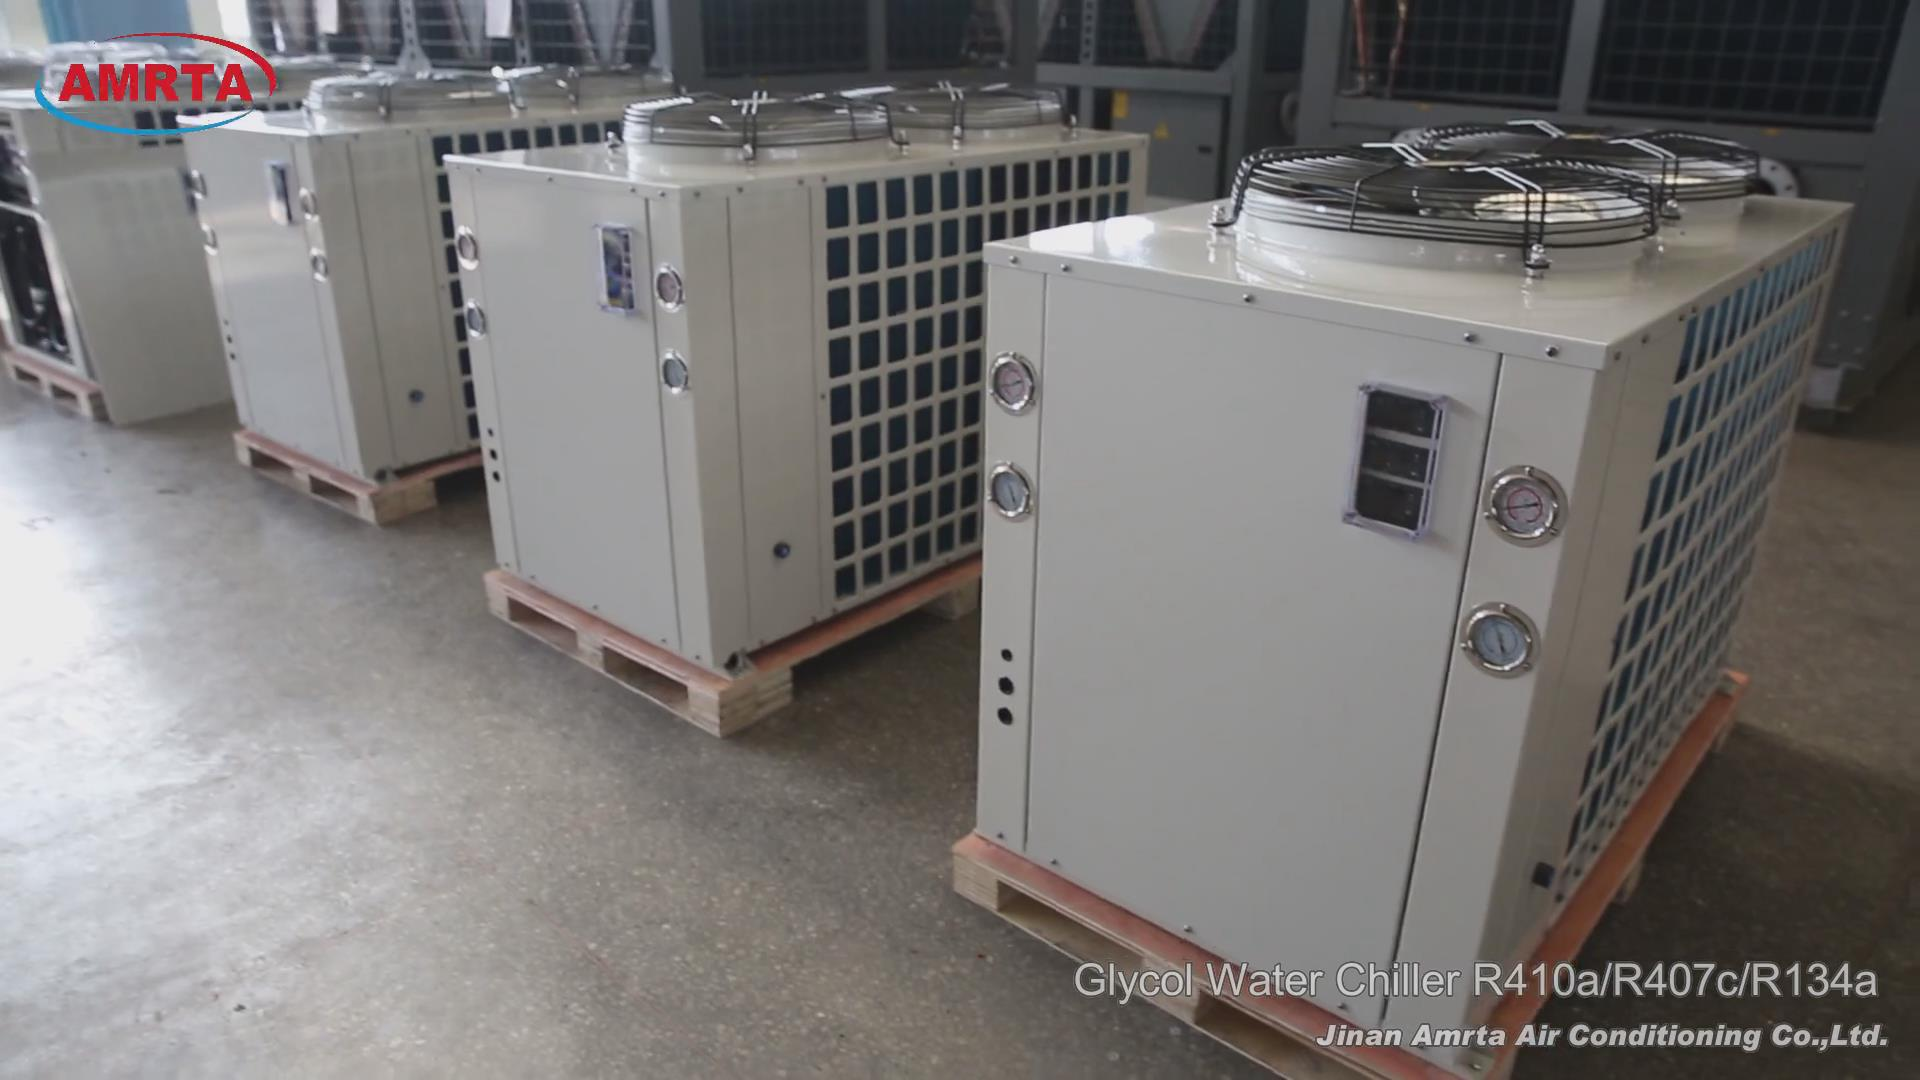 Amrta Industrial Glycol Water Chiller